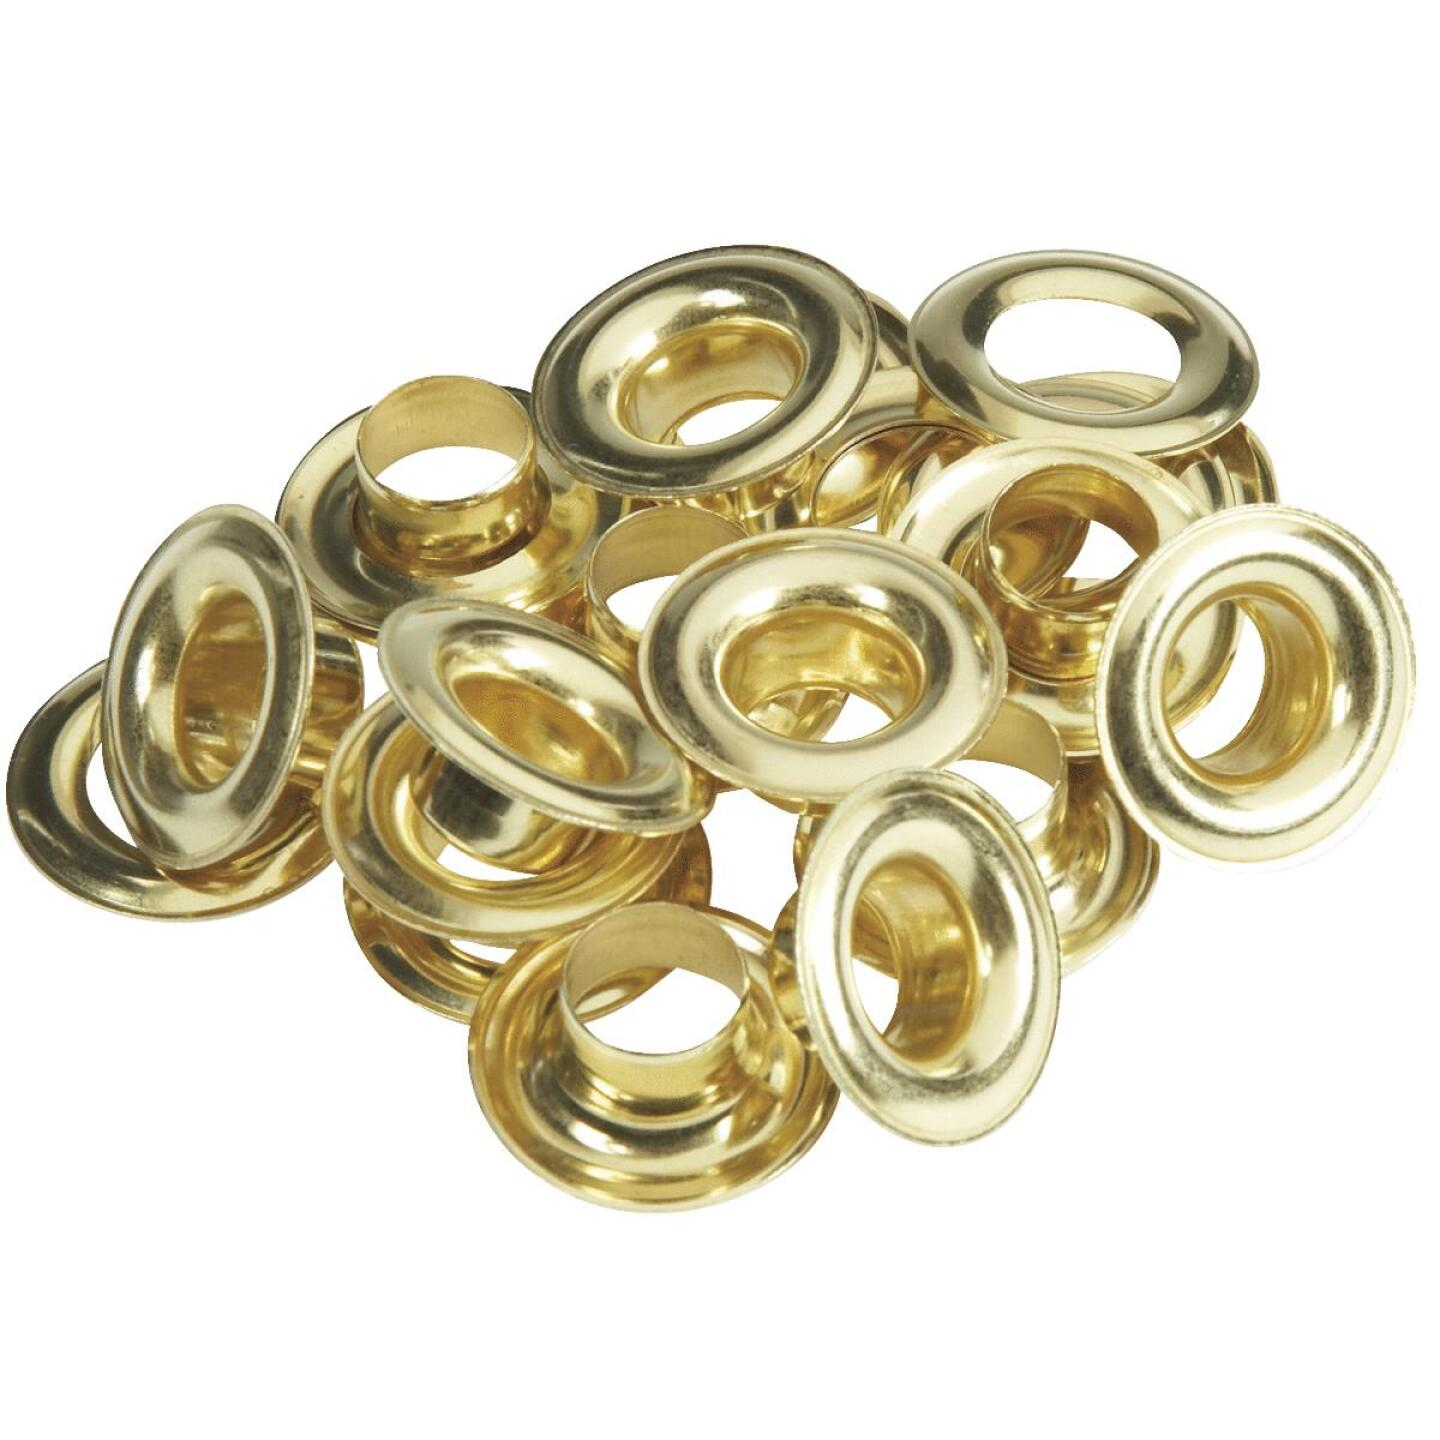 Lord & Hodge 1/2 In. Brass Grommet Refills (12 Ct.) Image 1